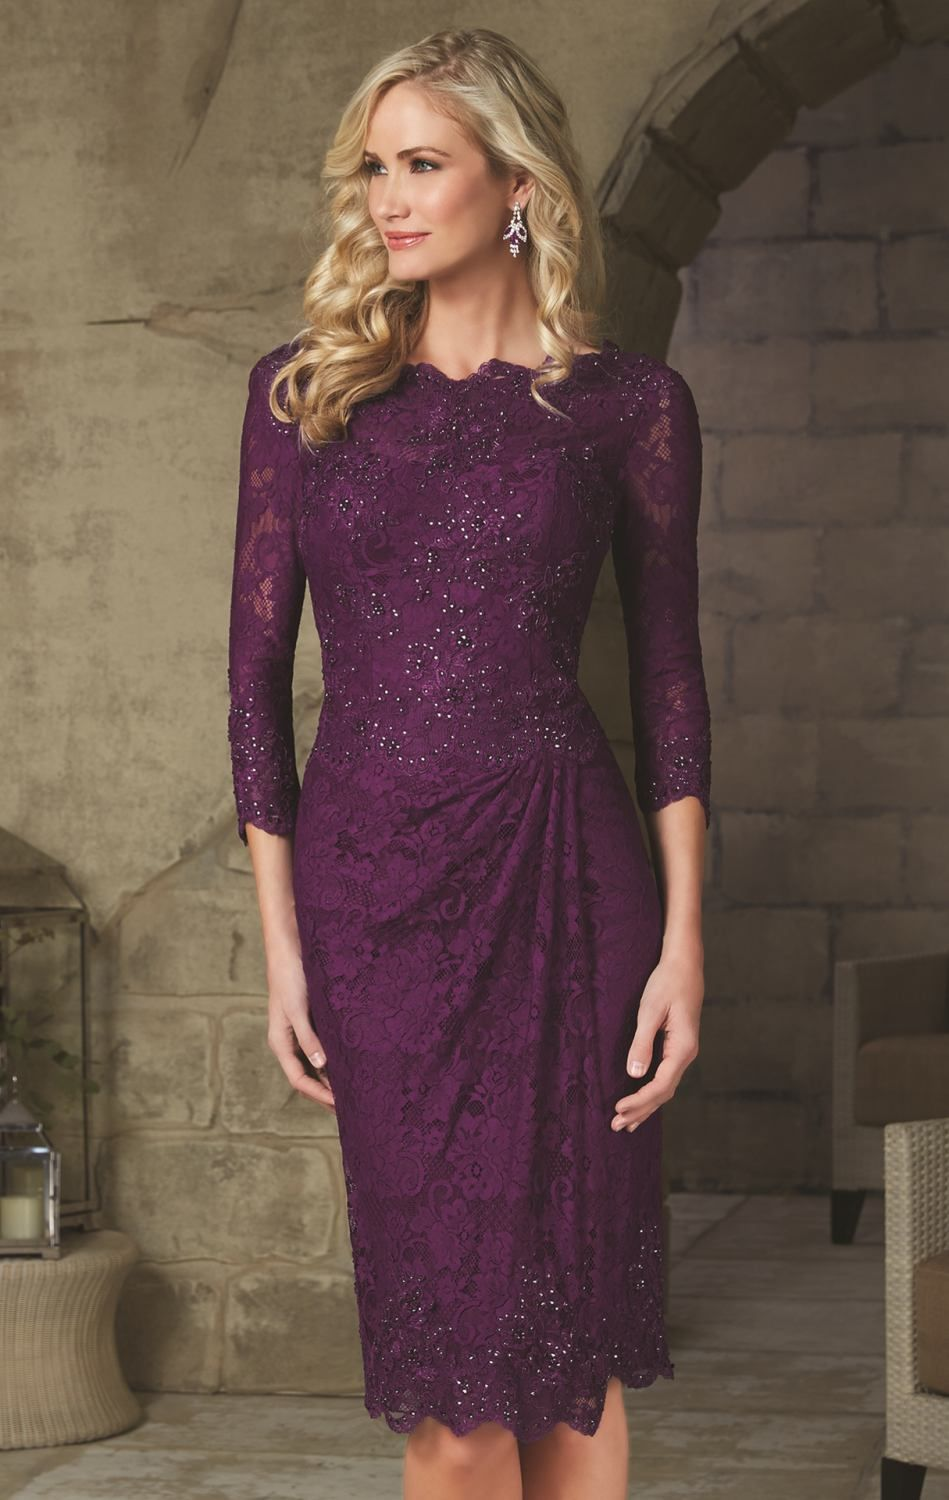 Mori lee 71238 by mgny by mori lee weddings pinterest mori lee cheap dress code dresses buy quality dress top directly from china dress marie suppliers modest purple lace knee length mother of the bride dresses 2015 ombrellifo Choice Image